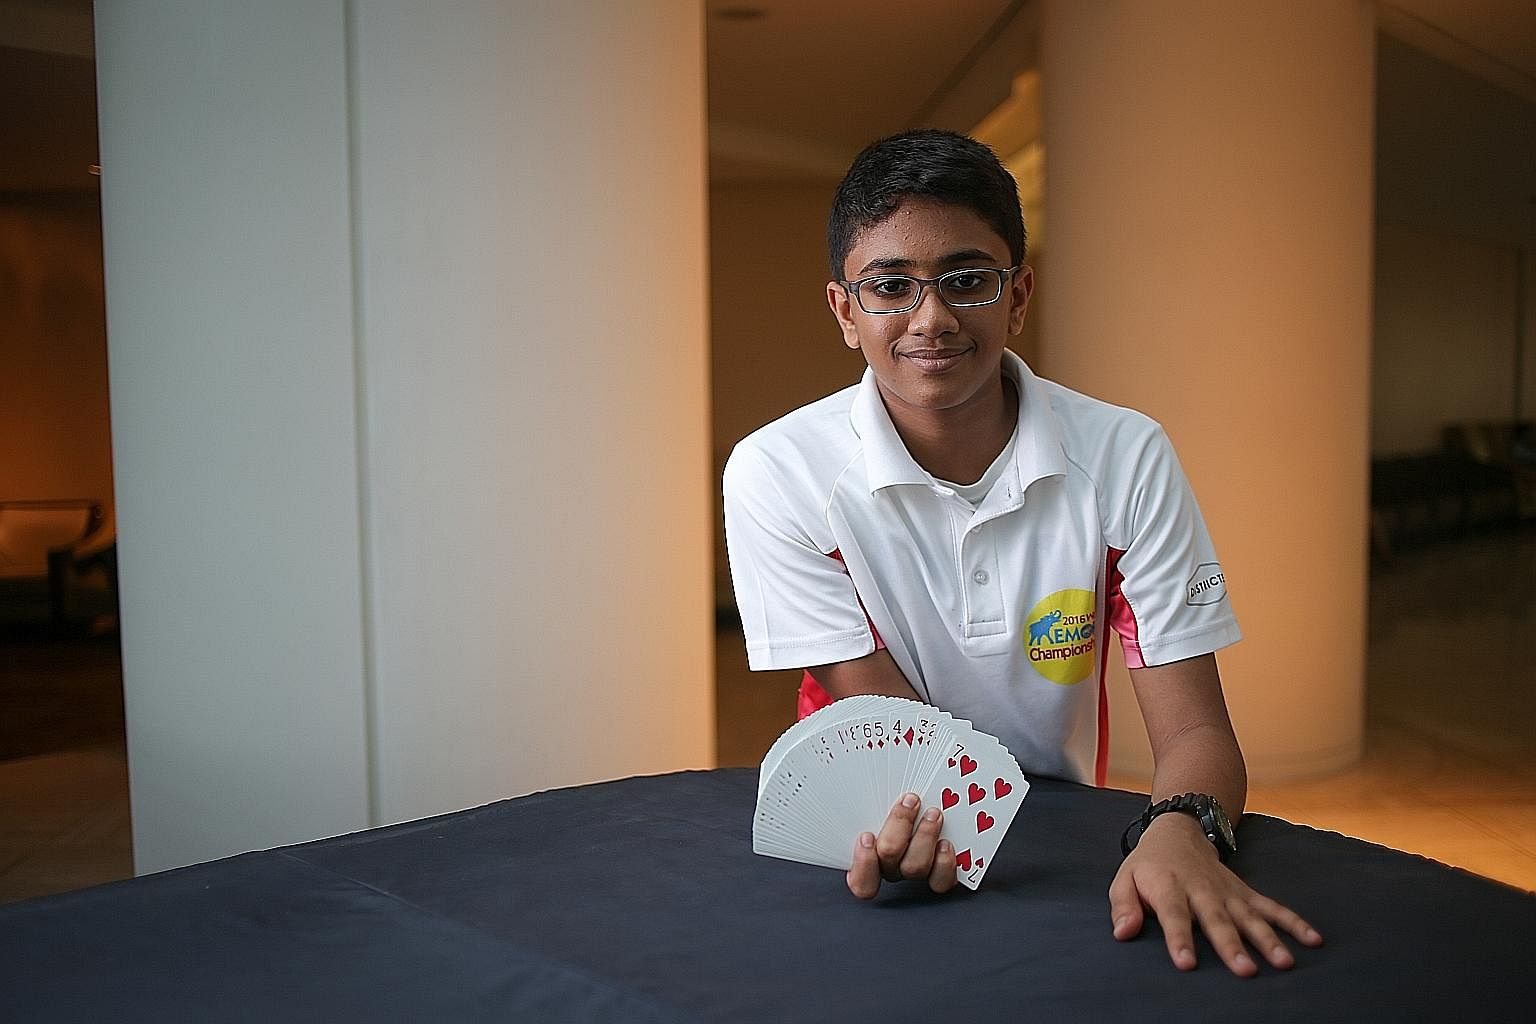 Grace Ng, 18, and Dhruv Manoj, 10, are part of the 13-member team representing Singapore in the World Memory Championships.